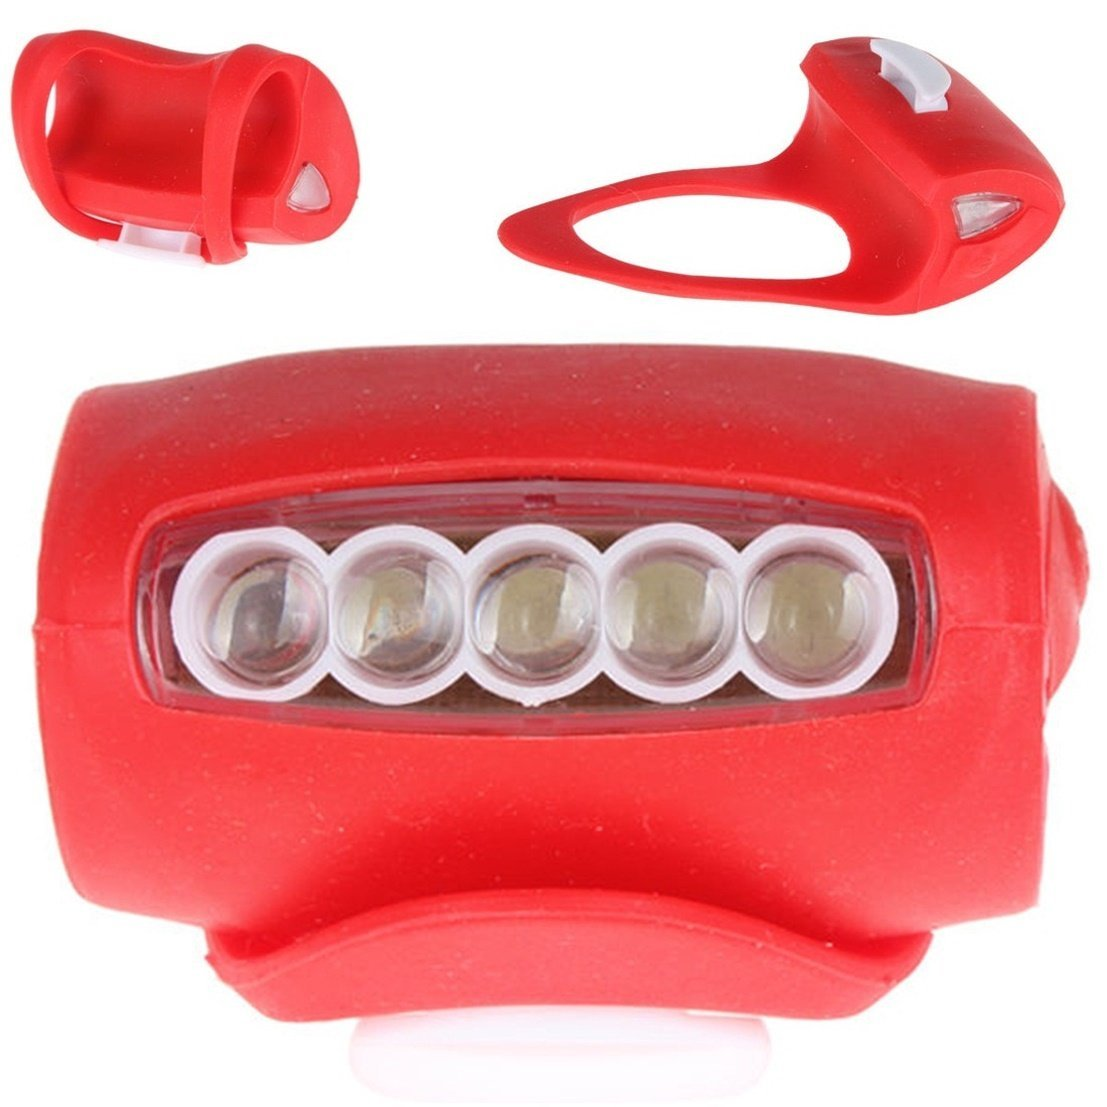 1 Pcs Unrivaled Popular Style 3 Mode 7x LED Silicone Bike Lights Waterproof Front Side Super Bright Color Red